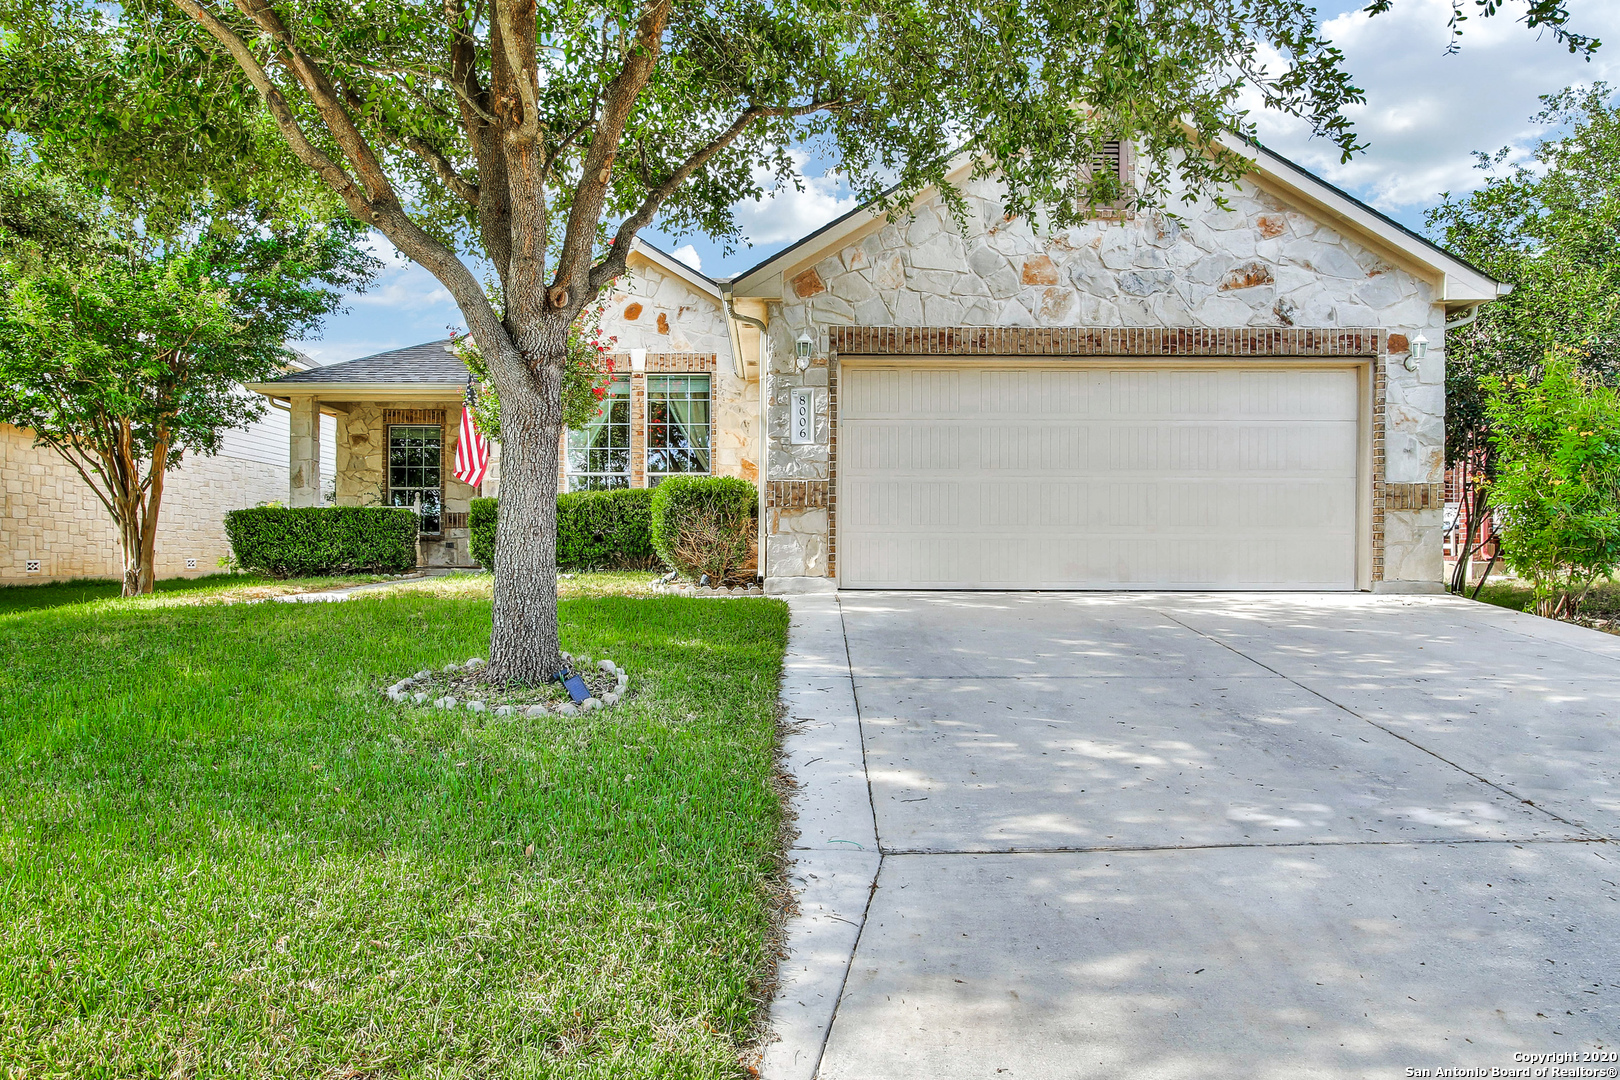 Ready for you to move in, this fantastic 3 Bedroom/2 Bath w/Study, Split Master bedroom with large walk-in closet home is one you don't want to miss! New Luxury Vinyl Plank and carpet are ready to serve you underfoot. Tile flooring is at Entry and Baths with Wood Flooring in the open Kitchen and Breakfast Dining. The Study has a closet and can serve as a 4th bedroom!  Large Formal Dining Room not for you? Use it as a FITNESS AREA or HOME SCHOOL!  All bedrooms have ceiling fans to keep you cool -- and how low can you go with your energy costs? VERY LOW with